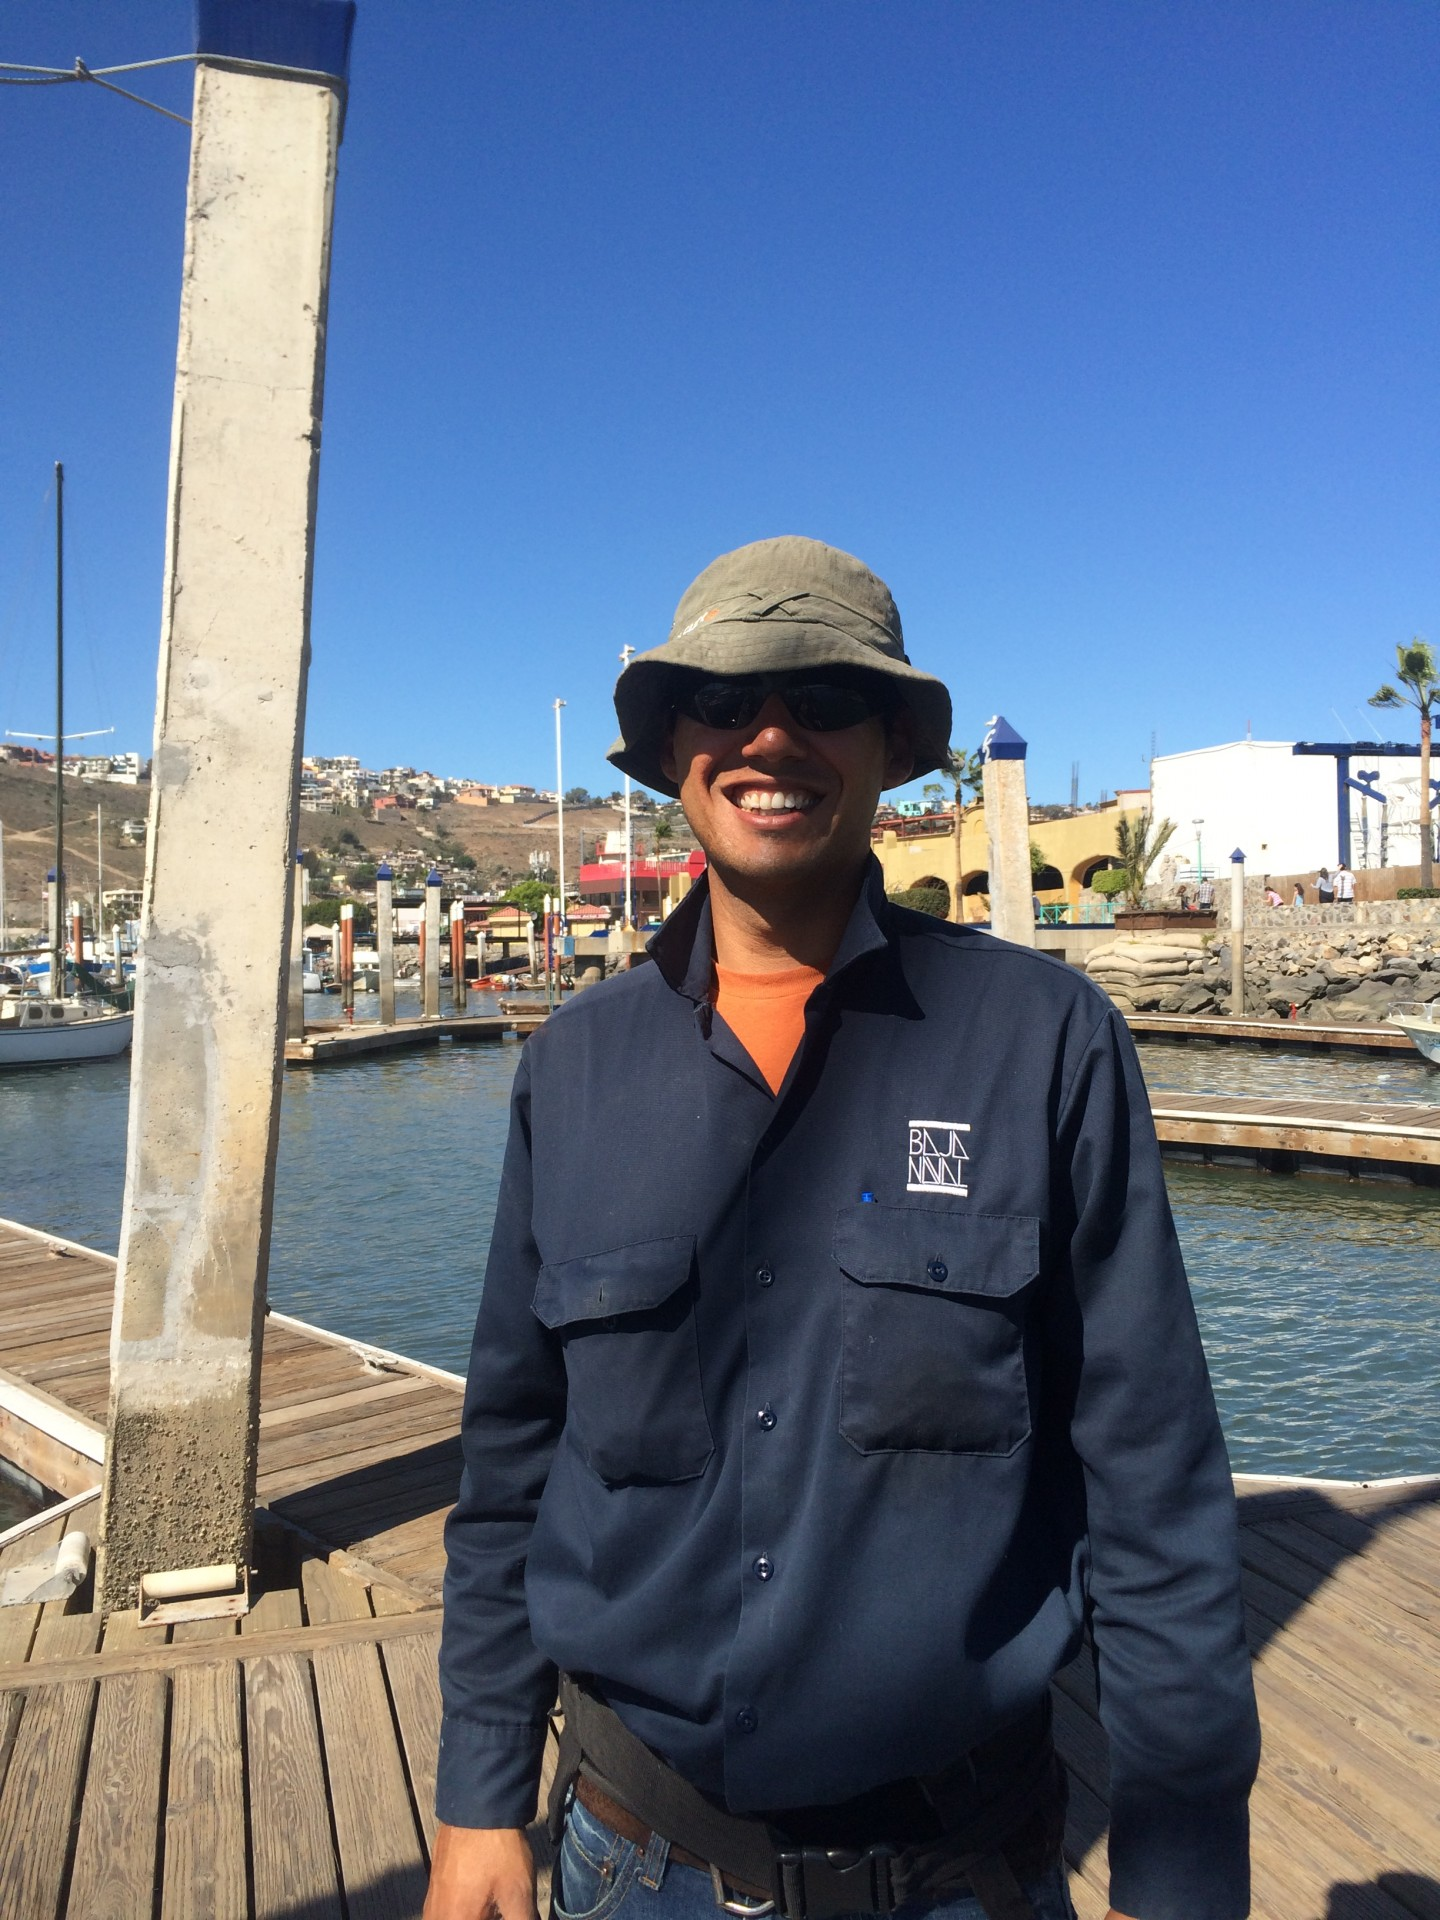 Carlos, the gentle soul who met us at the dock and walked us through the paperwork. Someday he hopes to have his own sailboat.